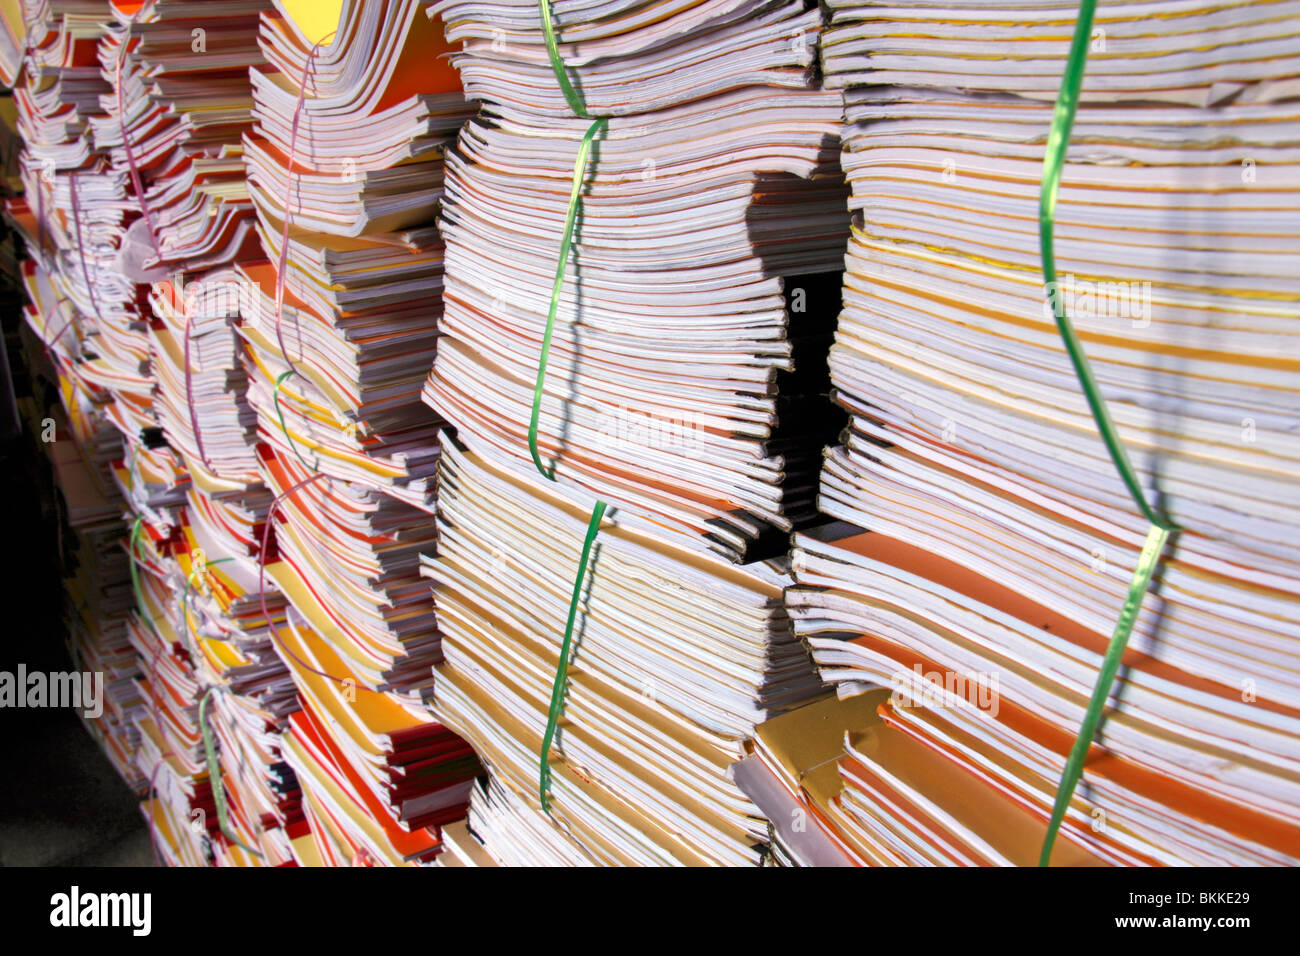 An image of a large stack of documents & files waiting to be processed. - Stock Image